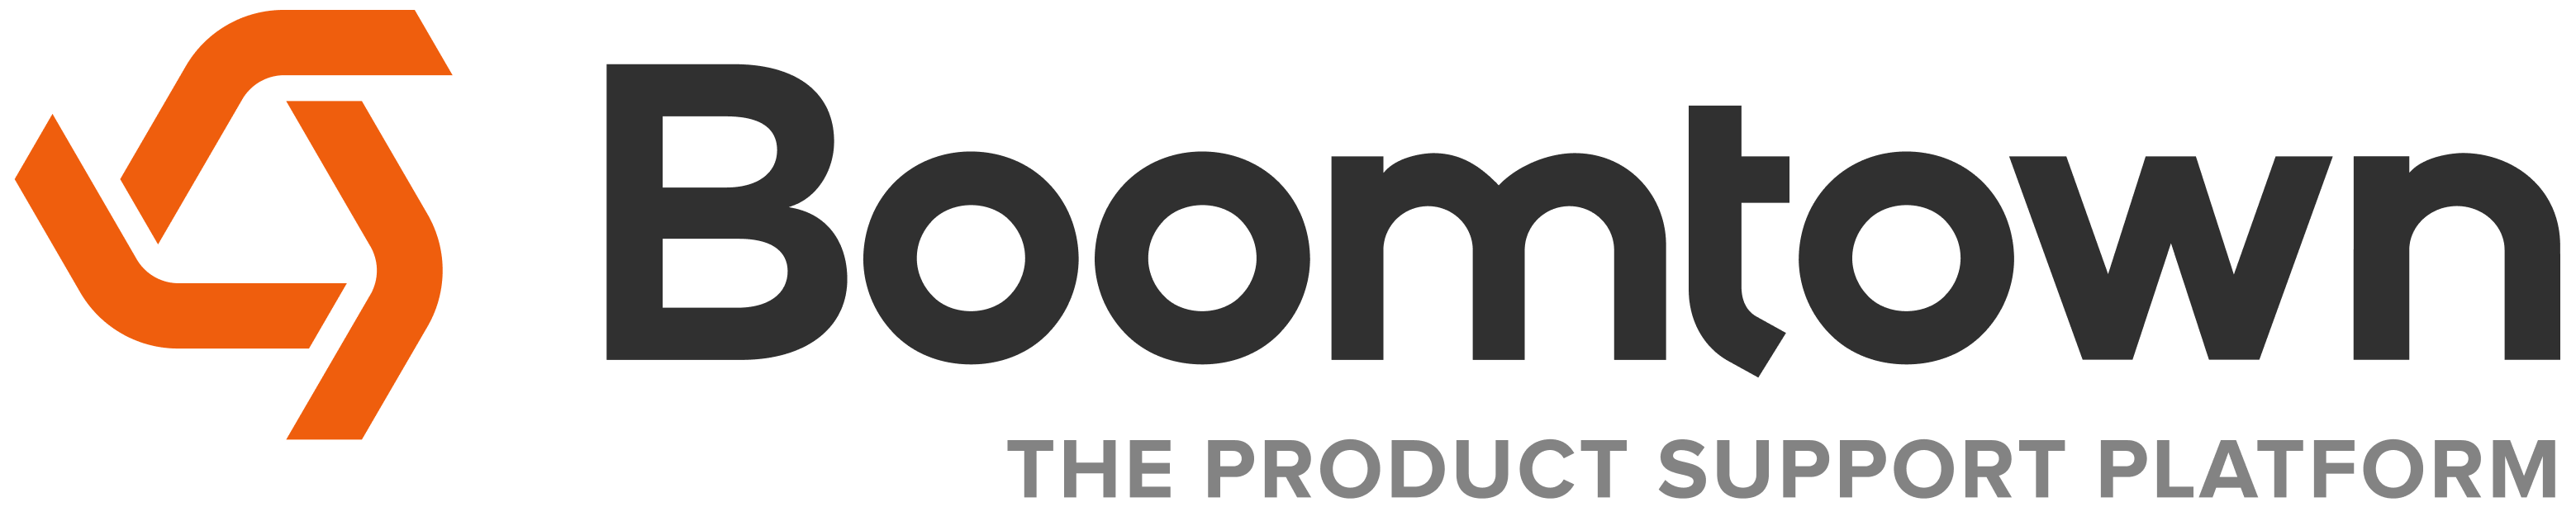 Boomtown: Product Support Platform